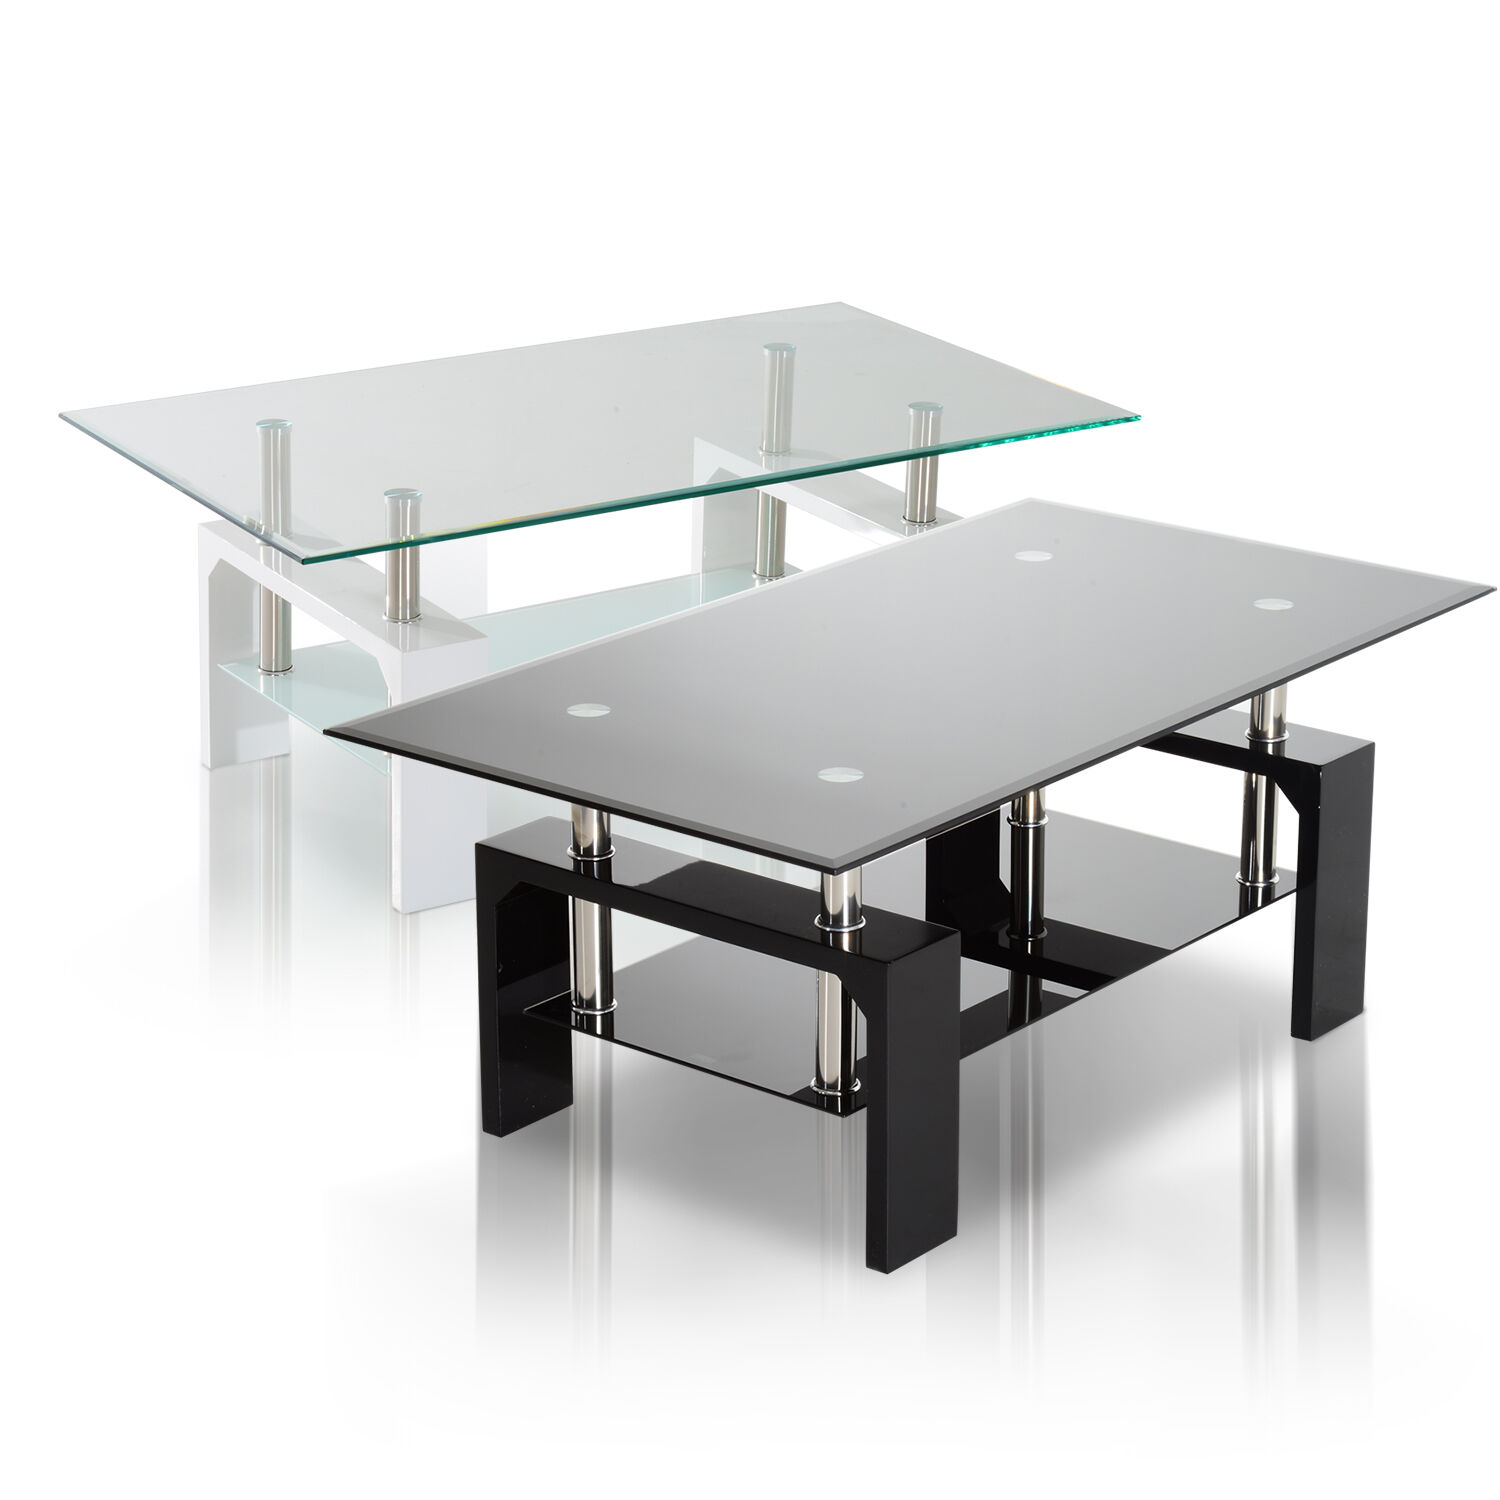 Glass Top Coffee Tables: Tempered Glass Top Coffee Table Rectangular Wood Shelf